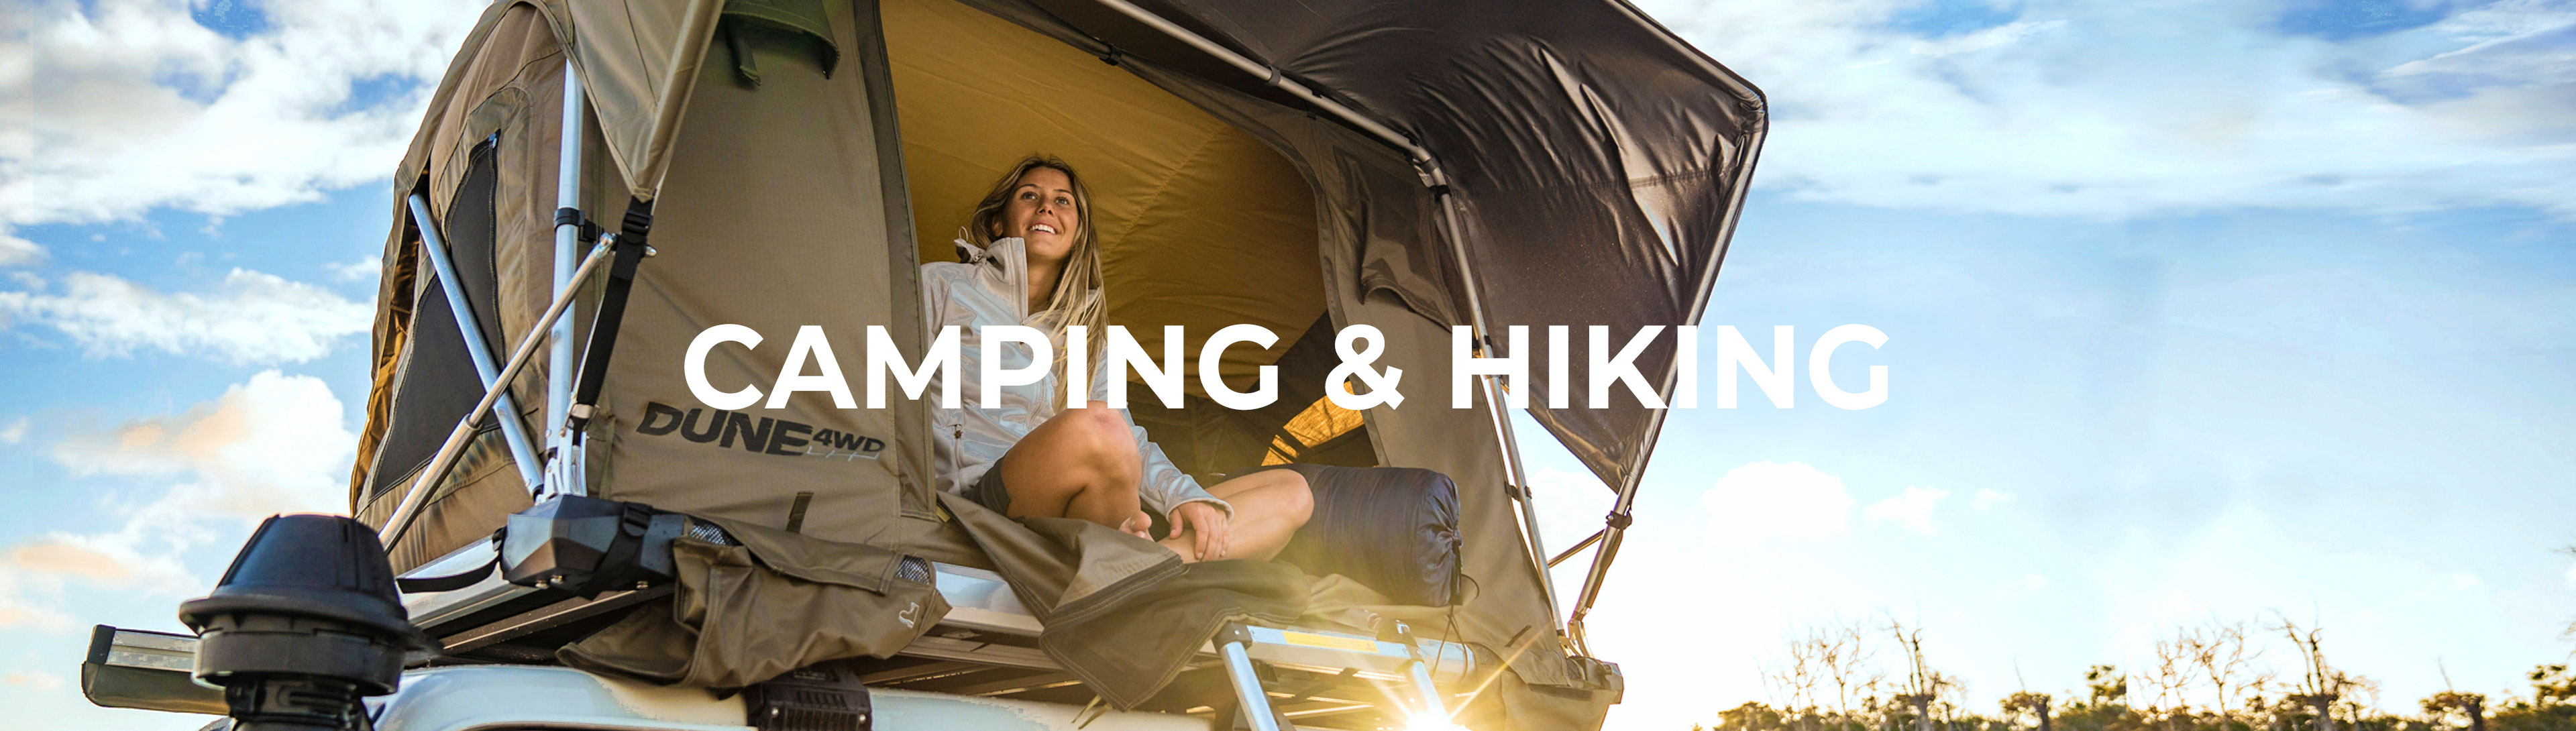 Shop Our Camping & Hiking Range